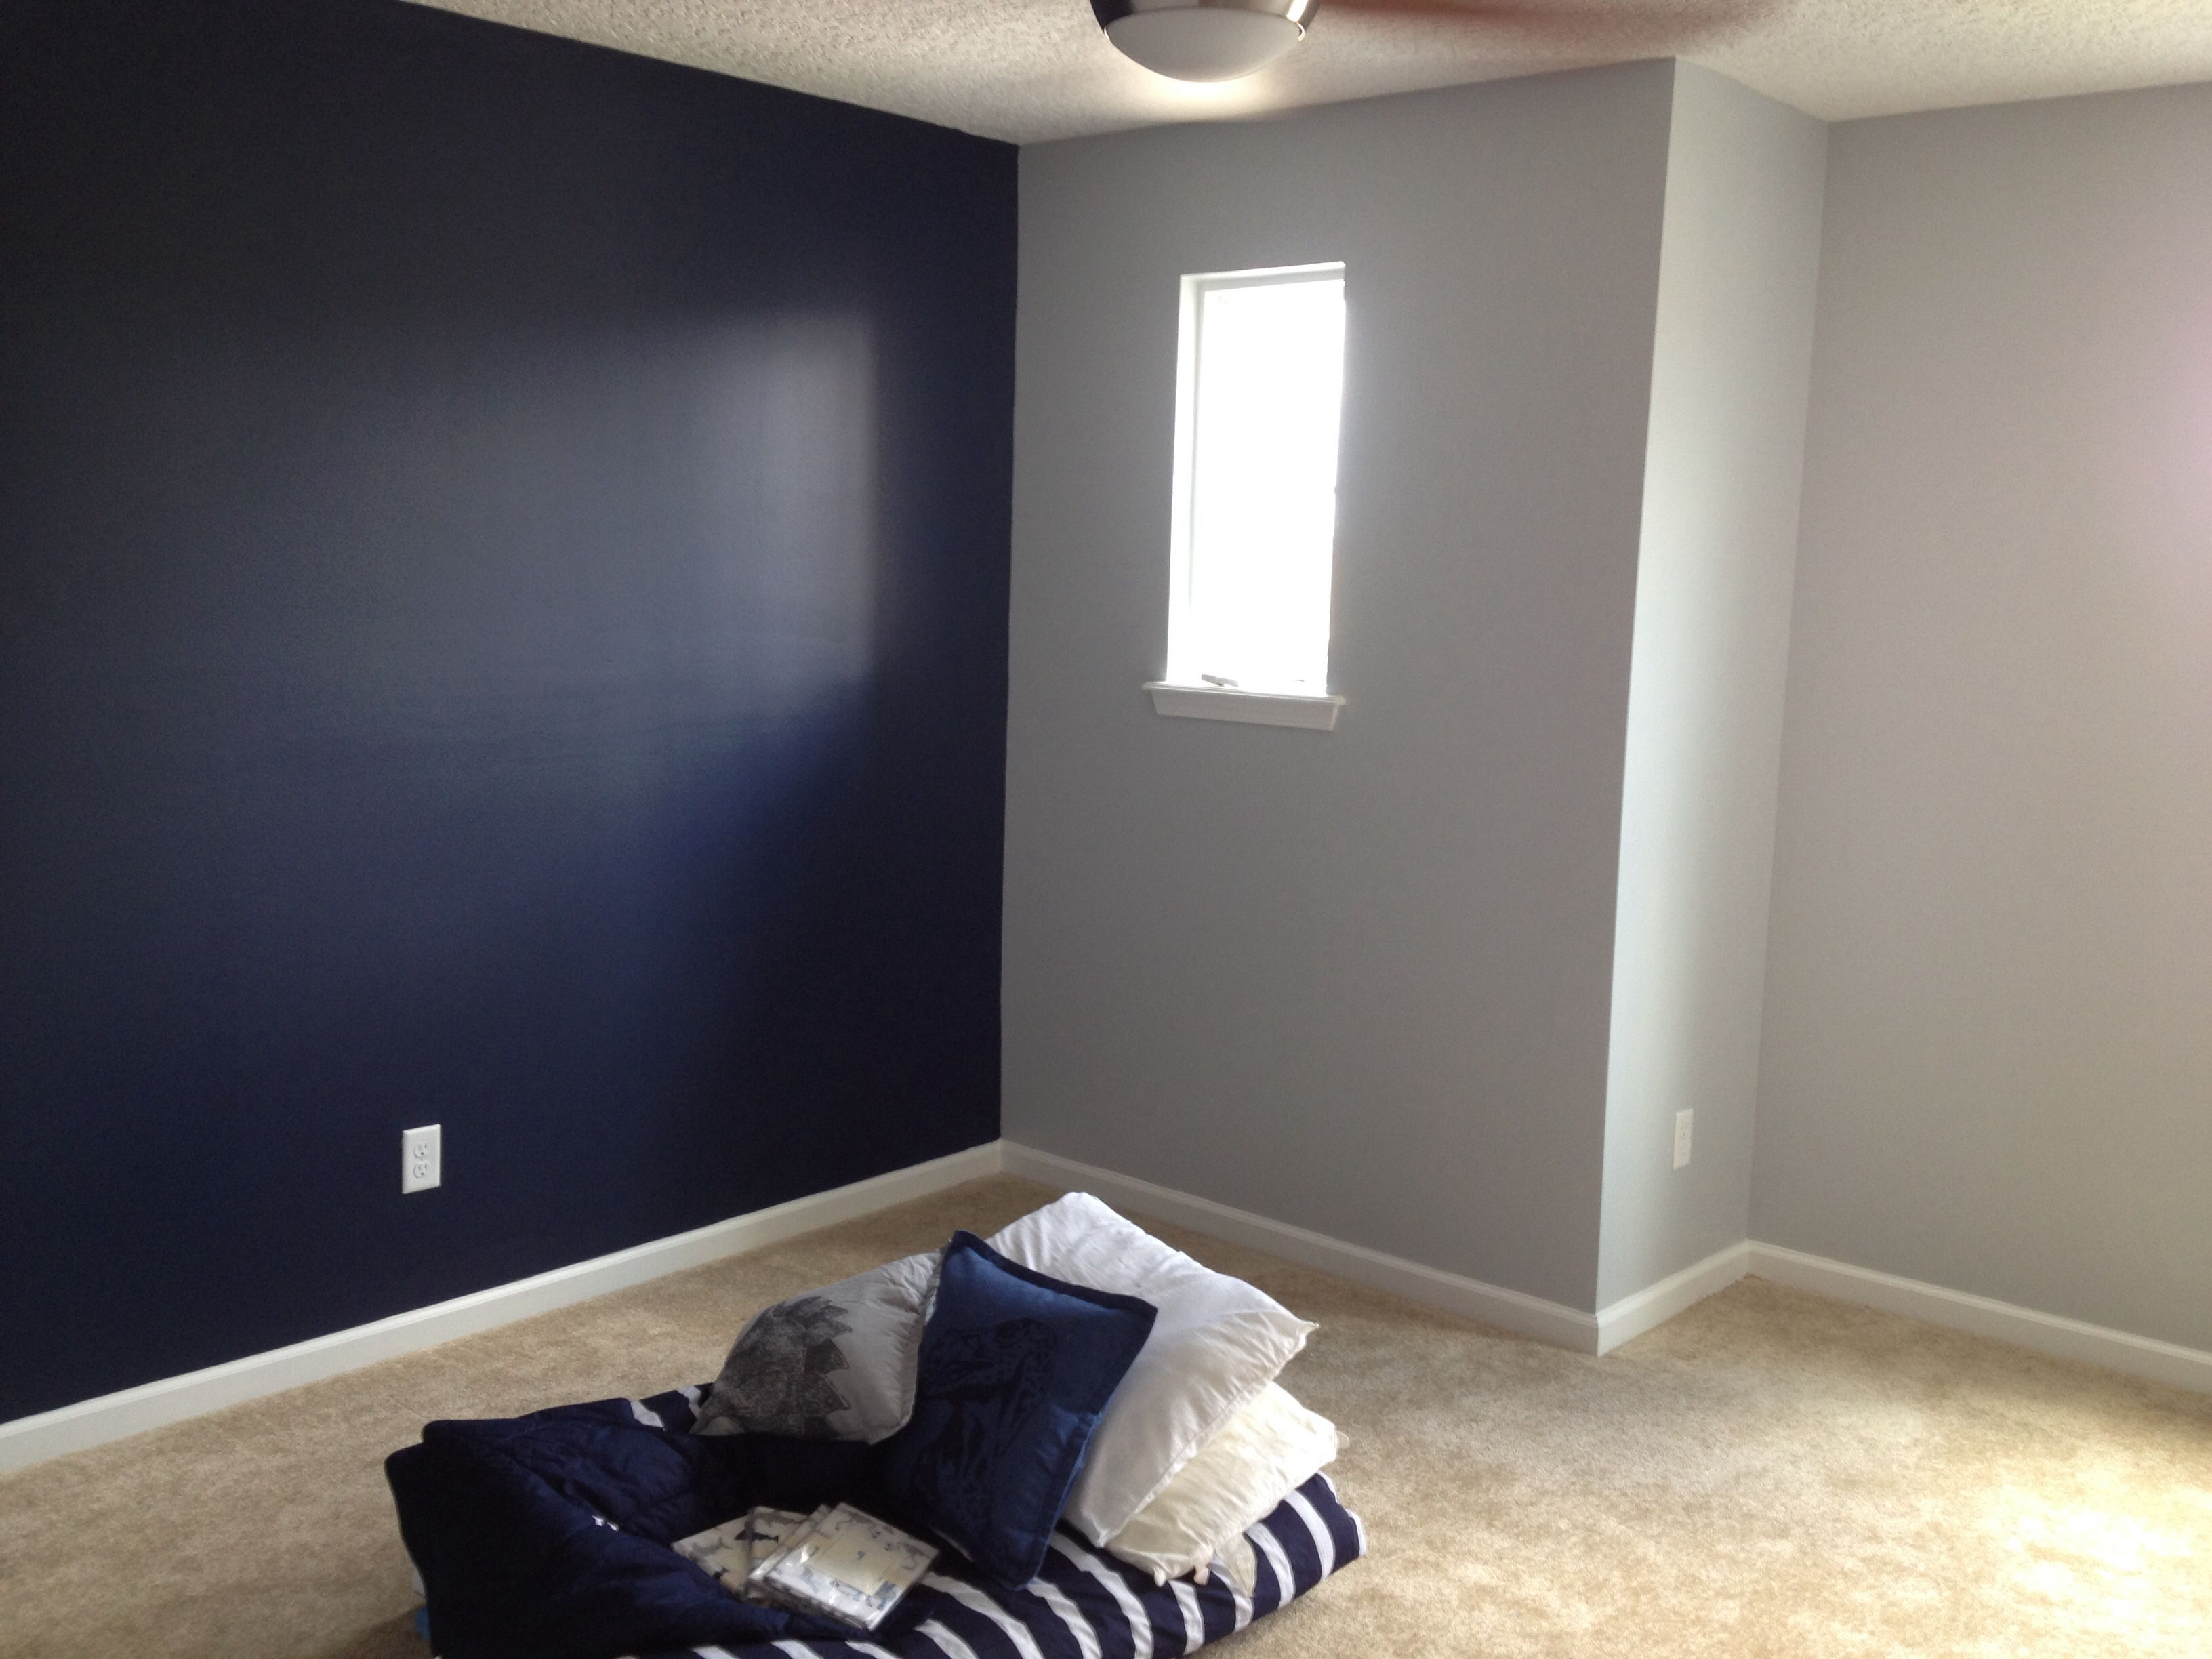 Bedroom Accent Colors Sherwin Williams Naval With Gray Screen On Opposing Wall